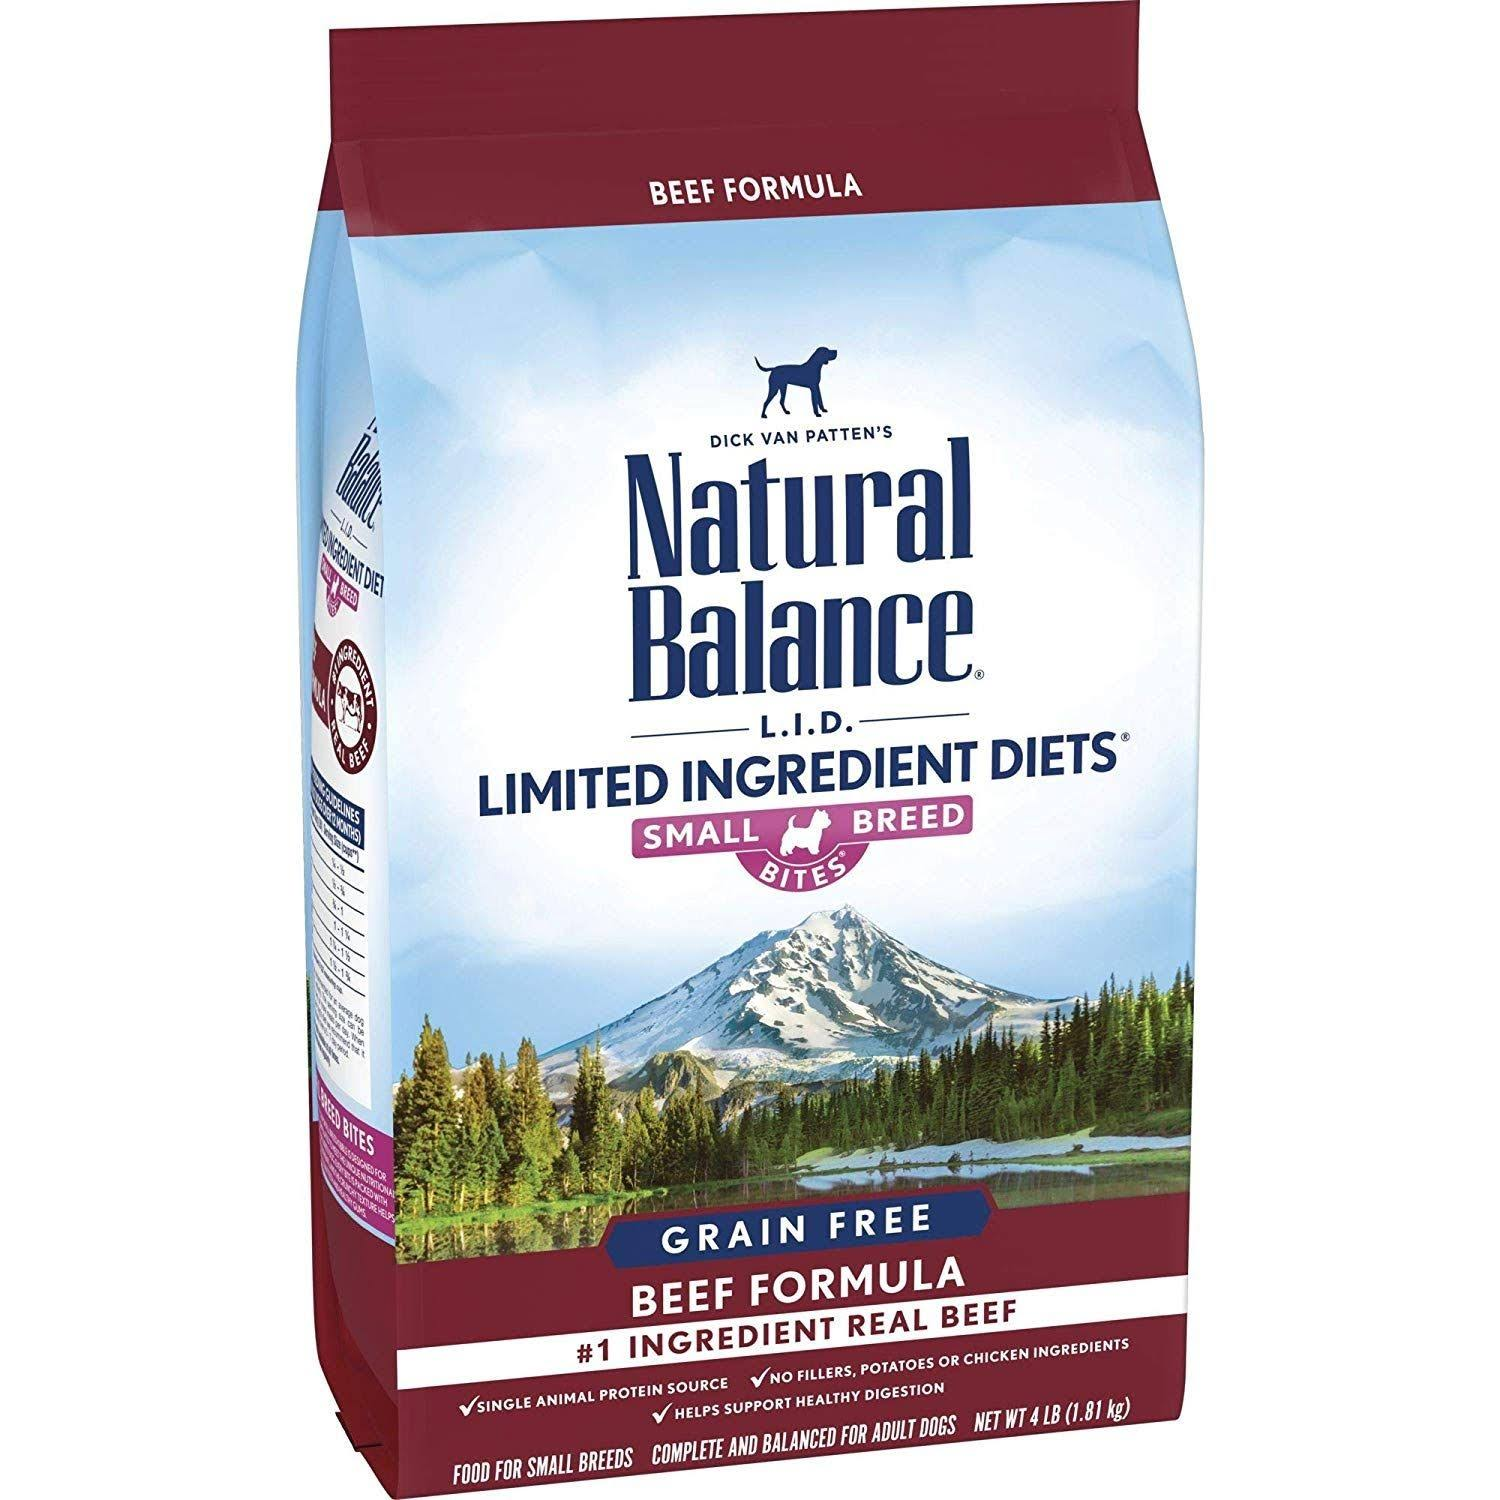 Natural Balance L.I.D. Limited Ingredient Diets Grain Free High Protein Beef Formula Small Breed Bites Dry Dog Food (4 lb)